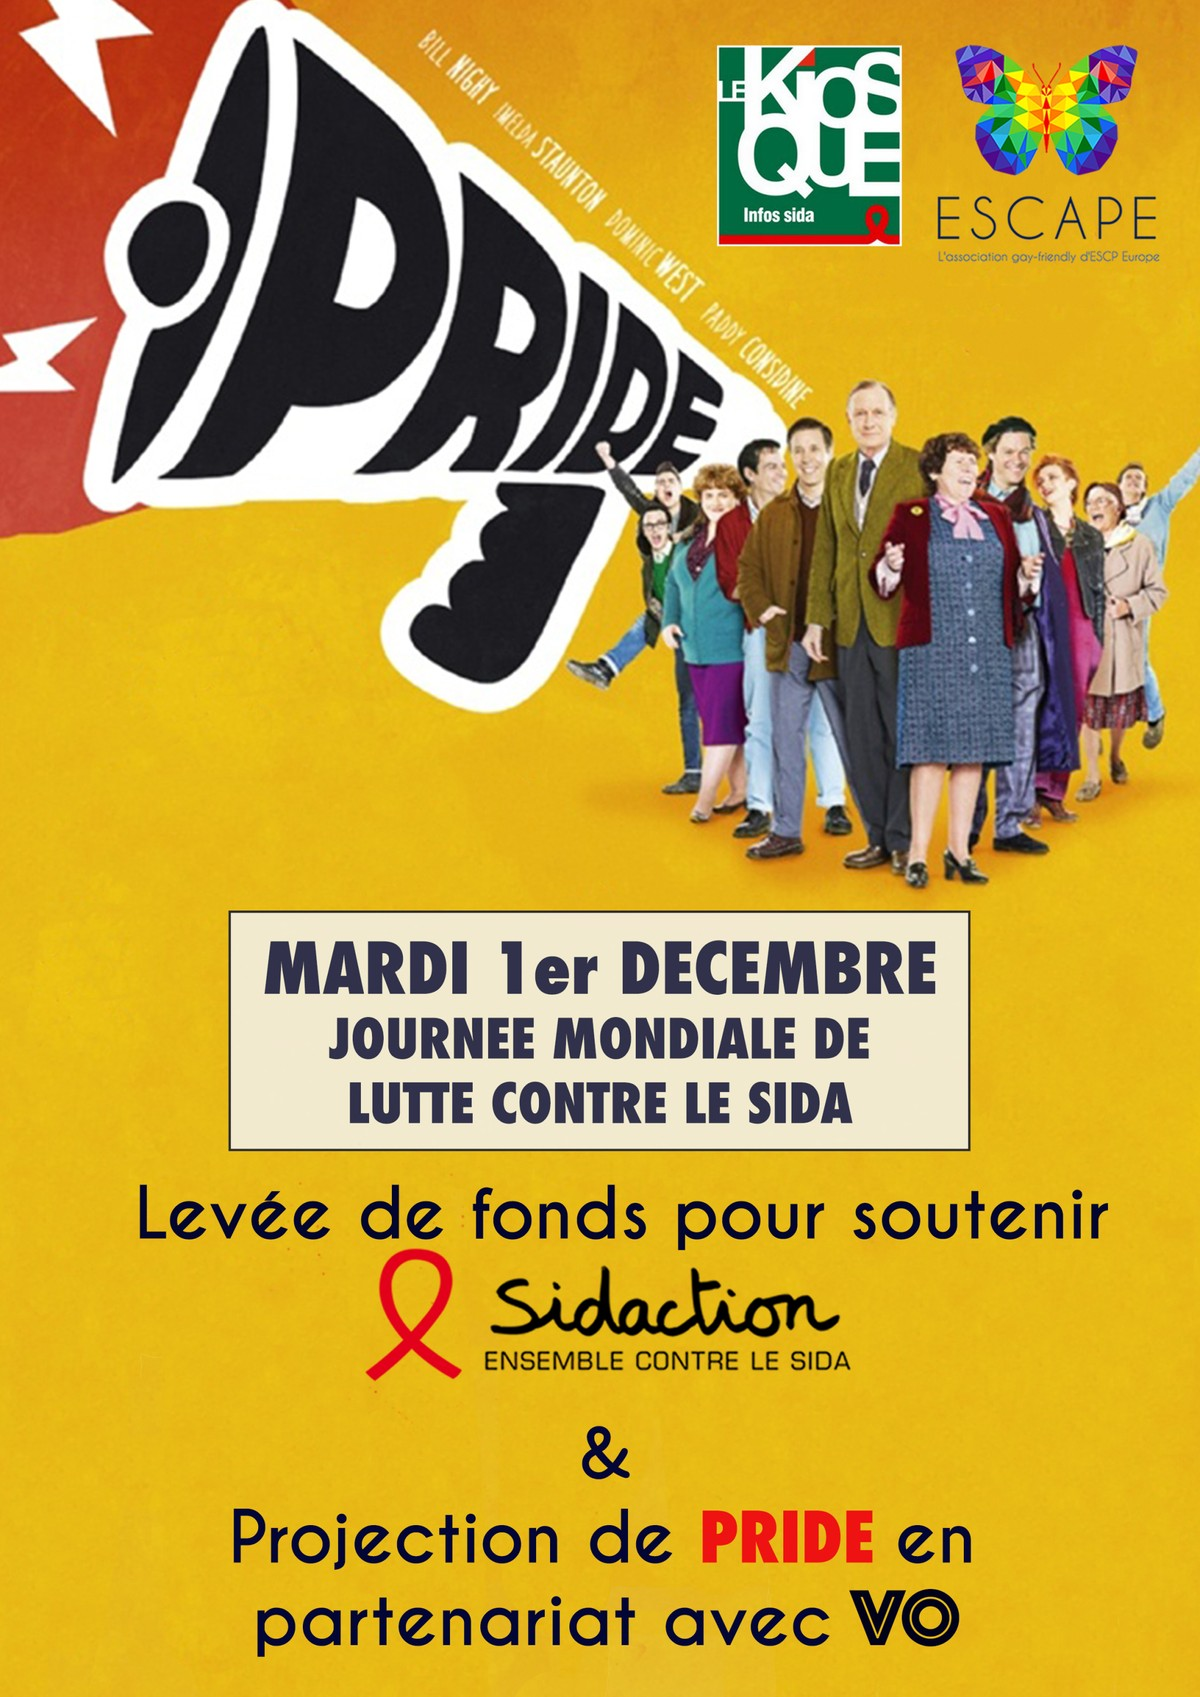 Pride the movie at ESCP Europe for the World AIDS Day